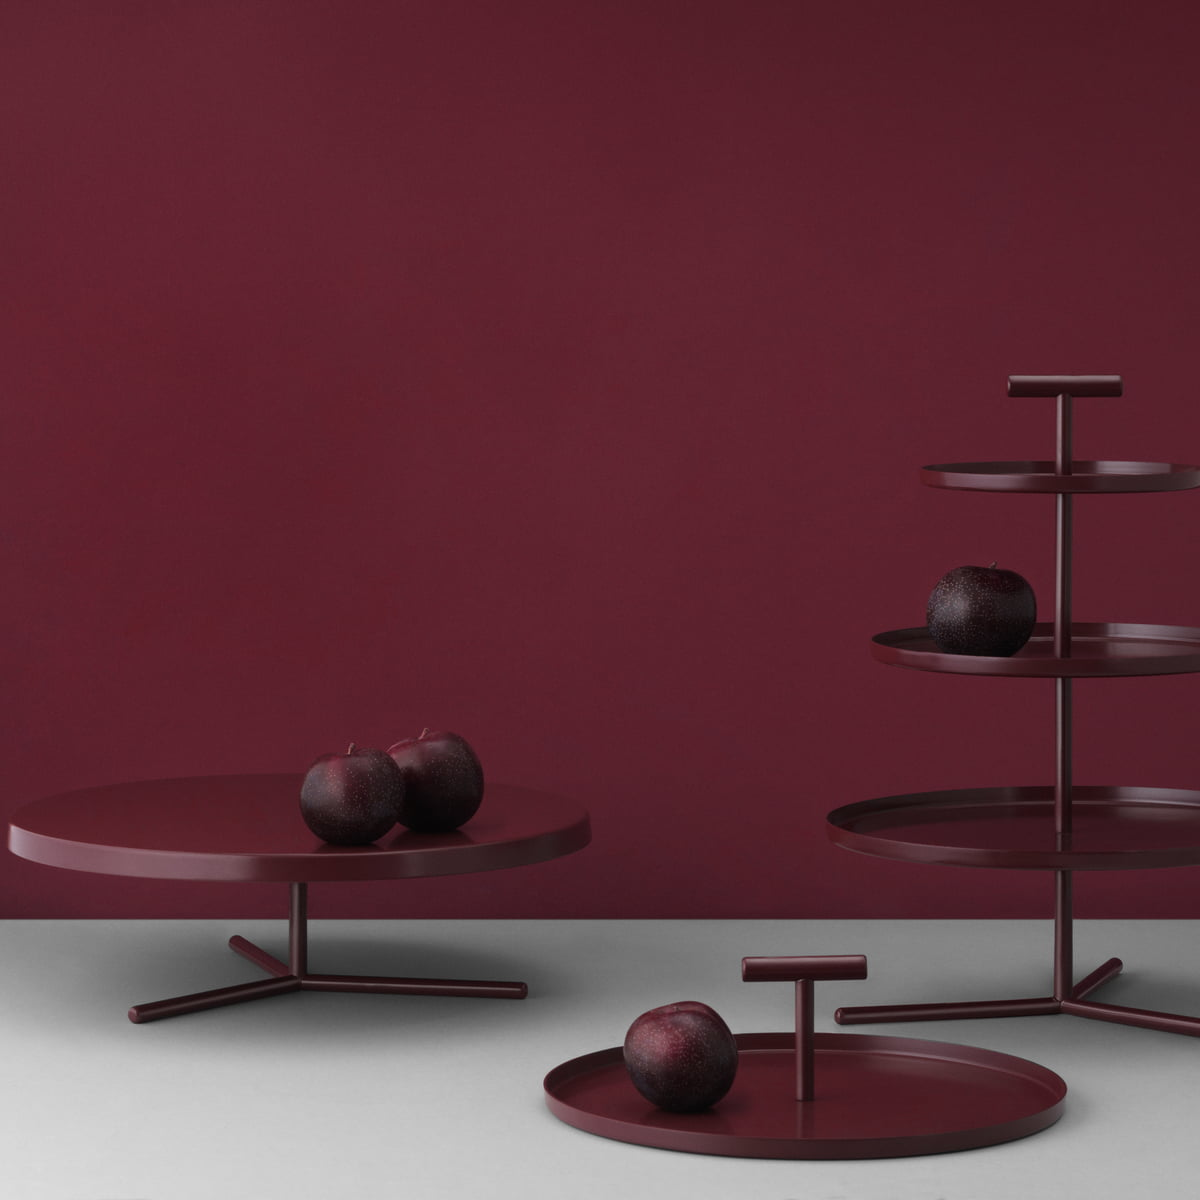 Glaze Cake Plate, Tiered Cake Stand And Tray By Normann Copenhagen